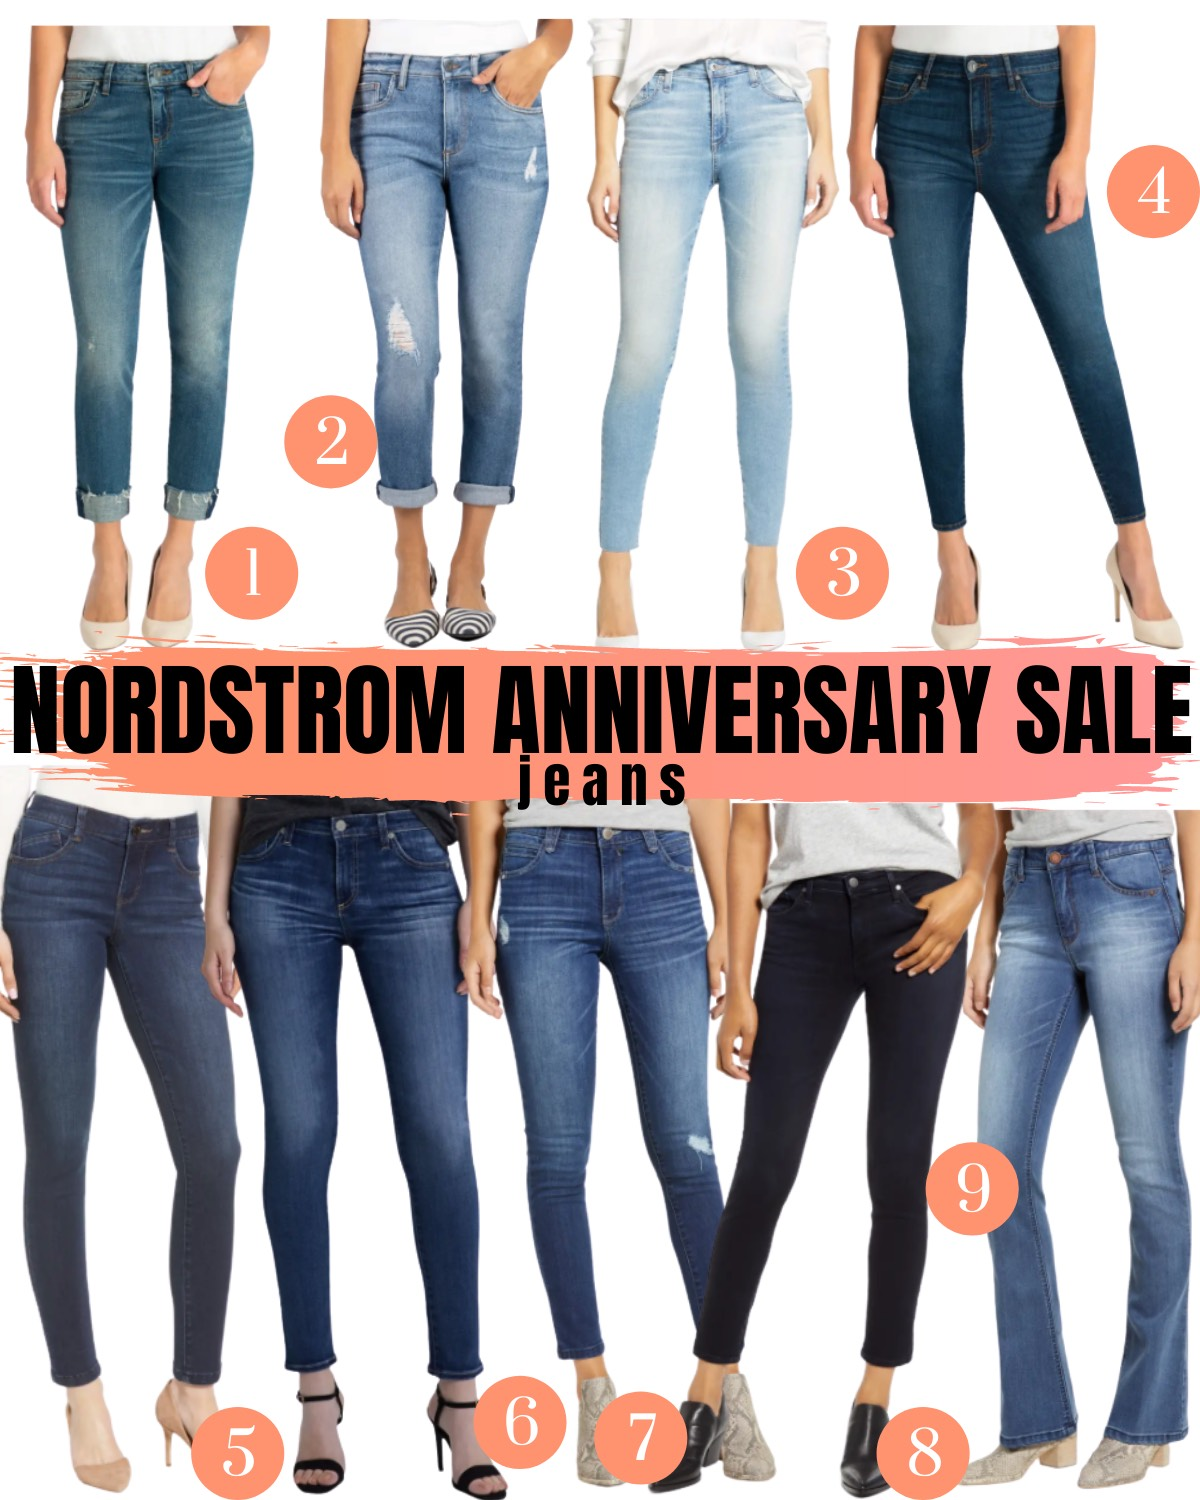 Nordstrom Anniversary Sale 2020 jeans